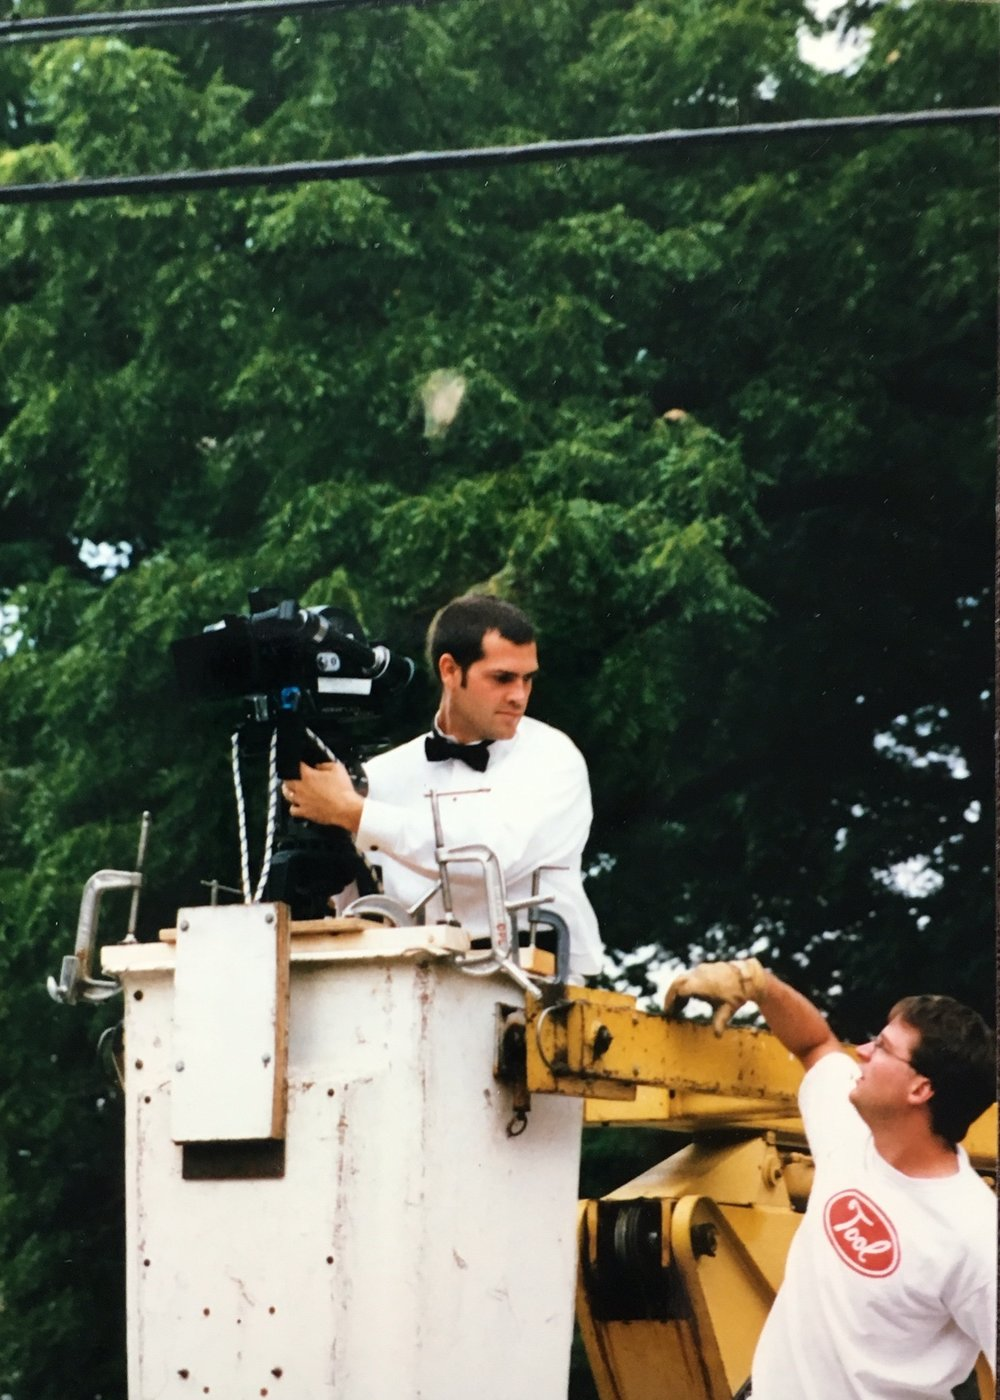 Big Boy with a camera- With Producer Kelly Christensen (right) filming Four Way Stop (1998)